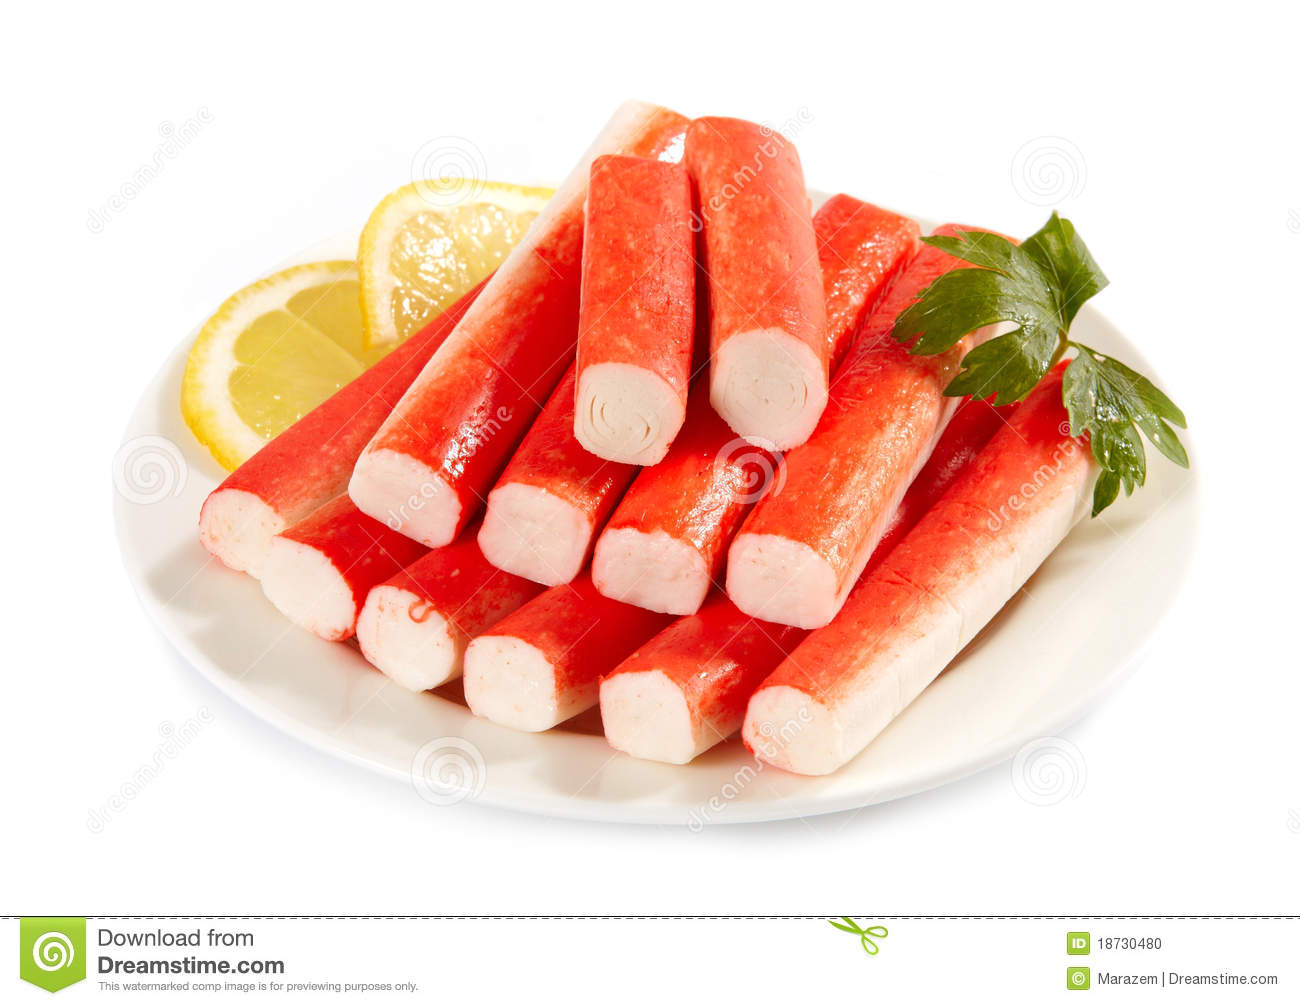 Crab Sticks Stock Photo - Image: 18730480